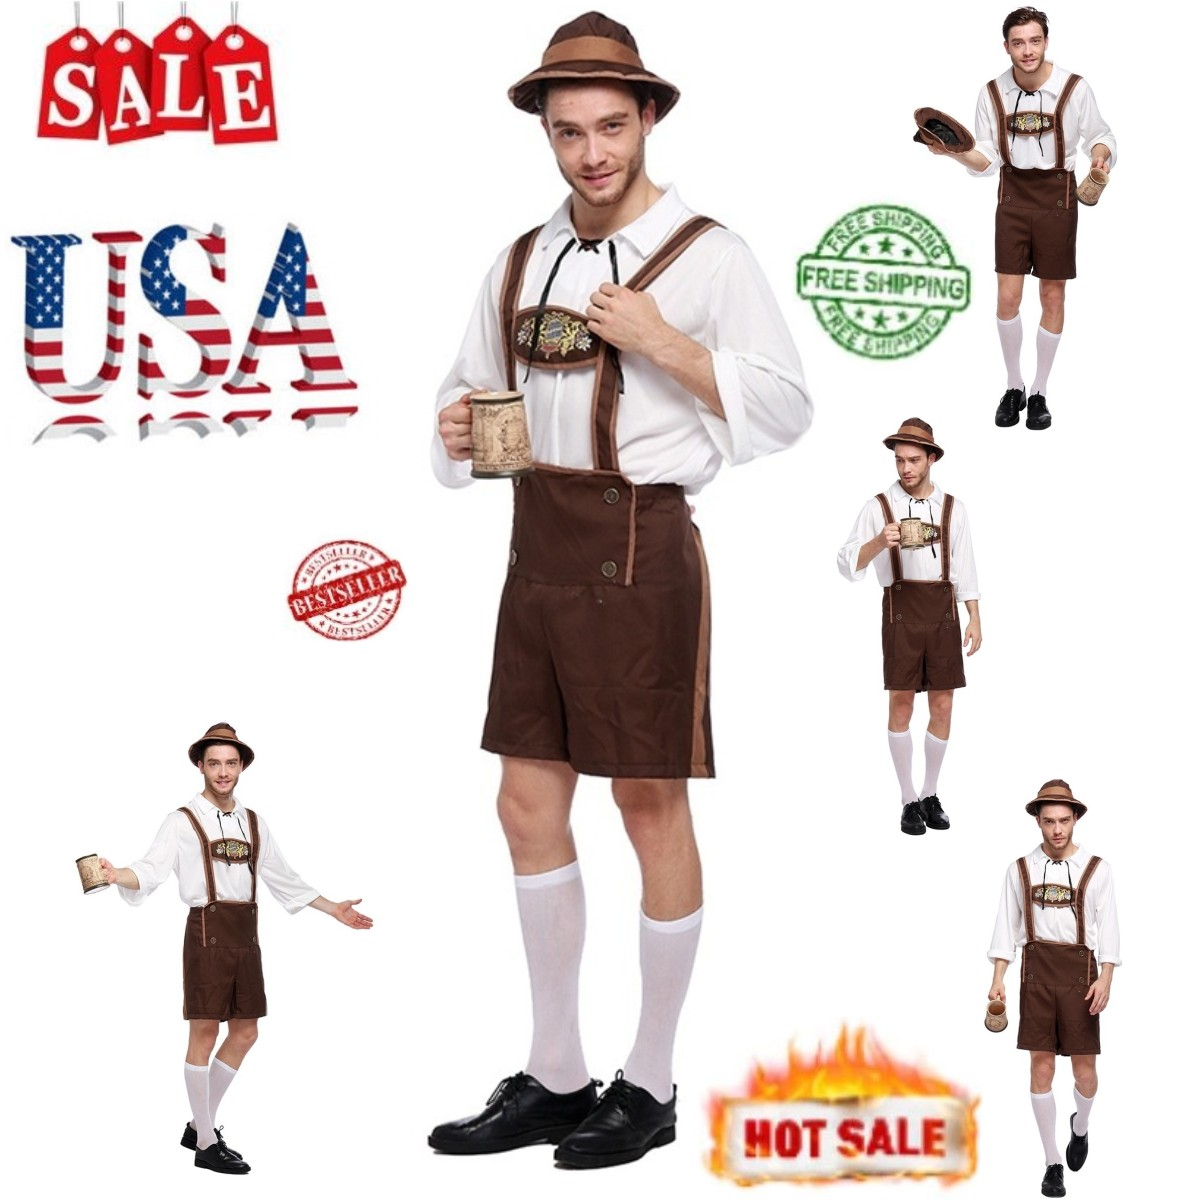 760a8fdccb7 Details about *Mens Adult German Bavarian Beer Oktoberfest Lederhosen Fancy  Dress Costume* Lot